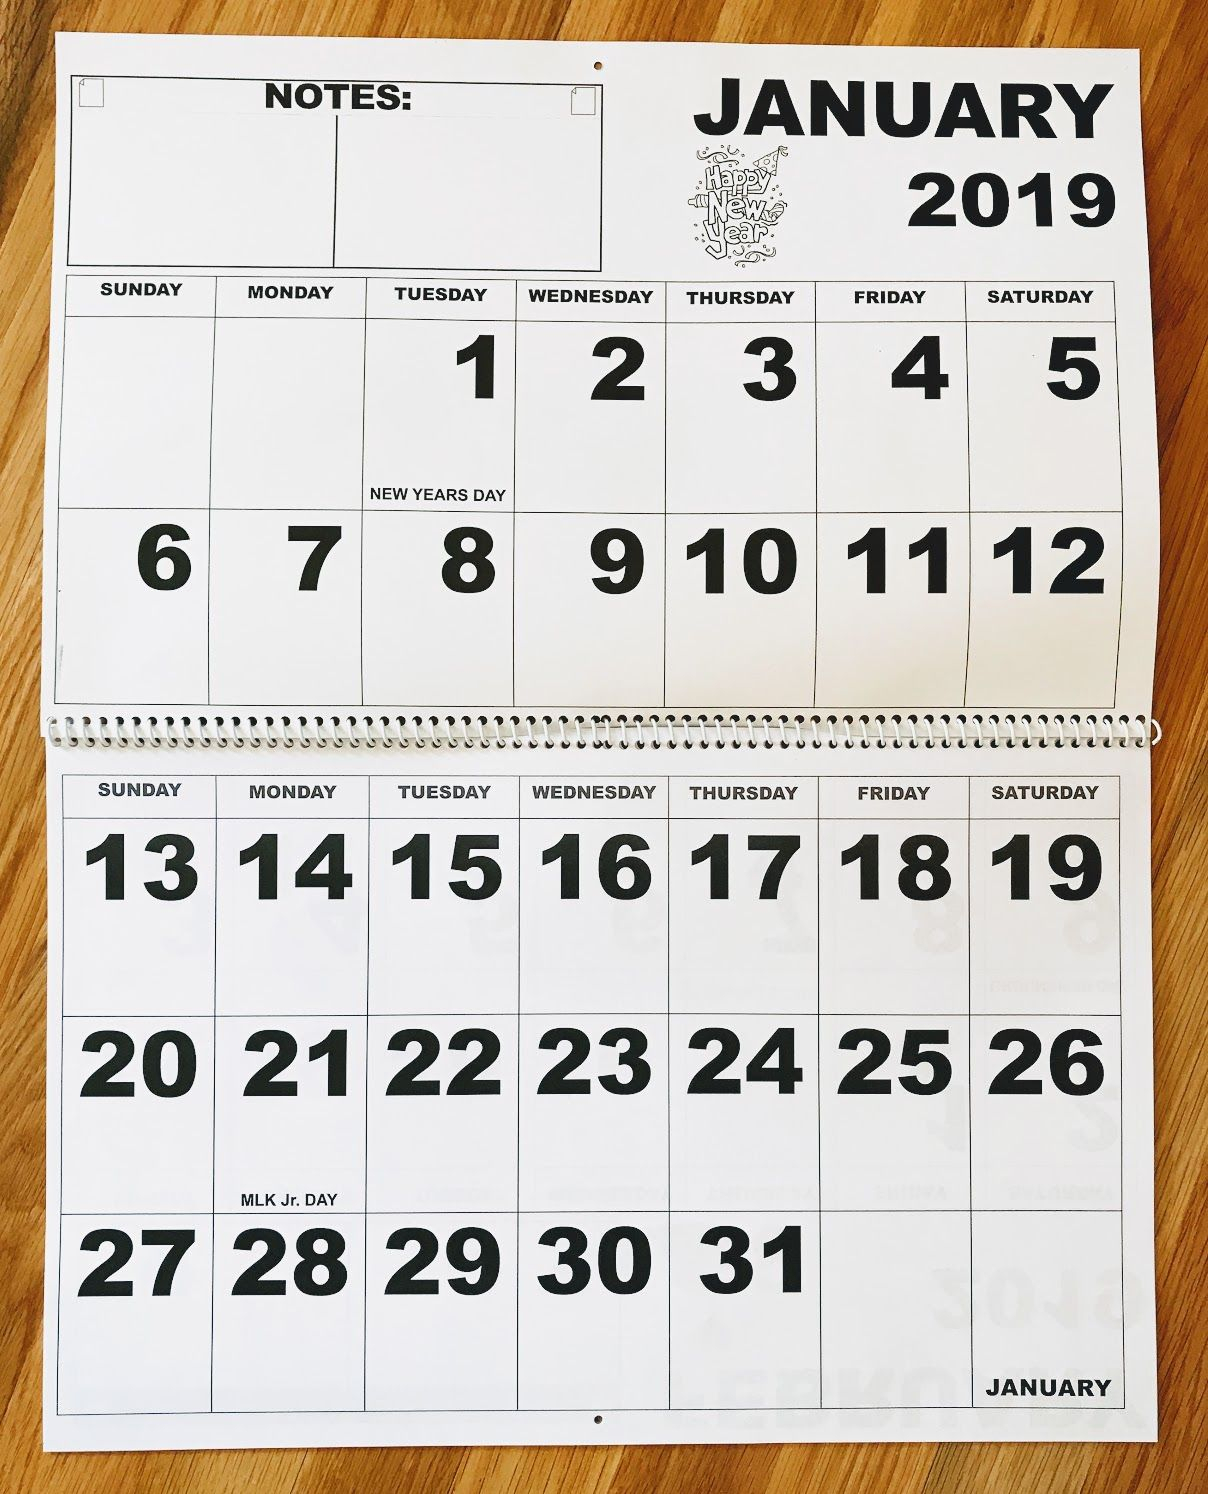 Pin On Macular Degeneration Aids To Help Keep Your Independence intended for Free Printable Large Print Calendars For The Visually Impaired